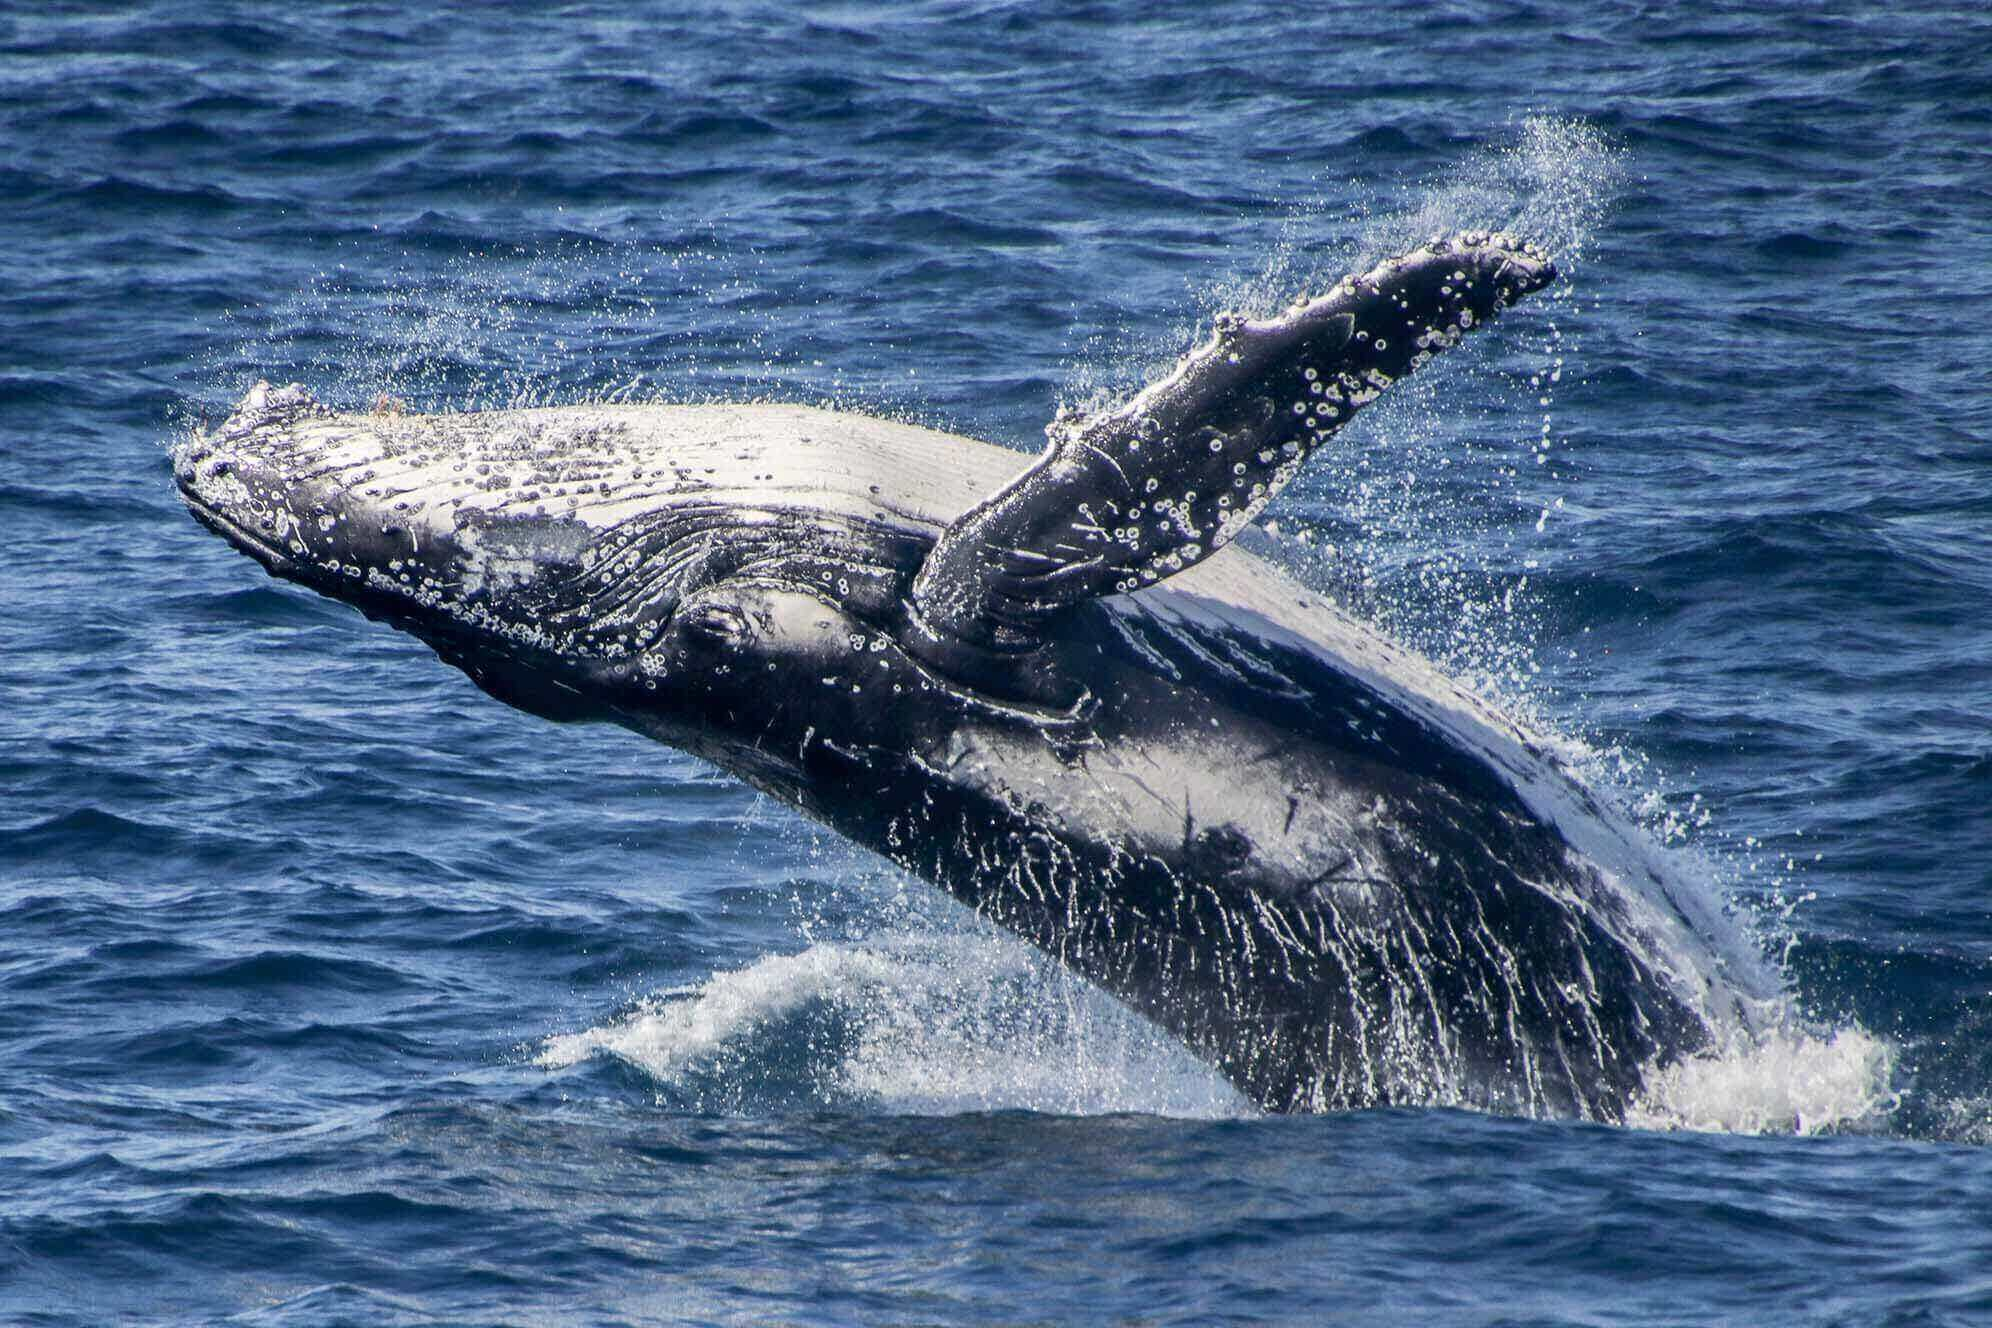 Why do humpback whales migrate north?